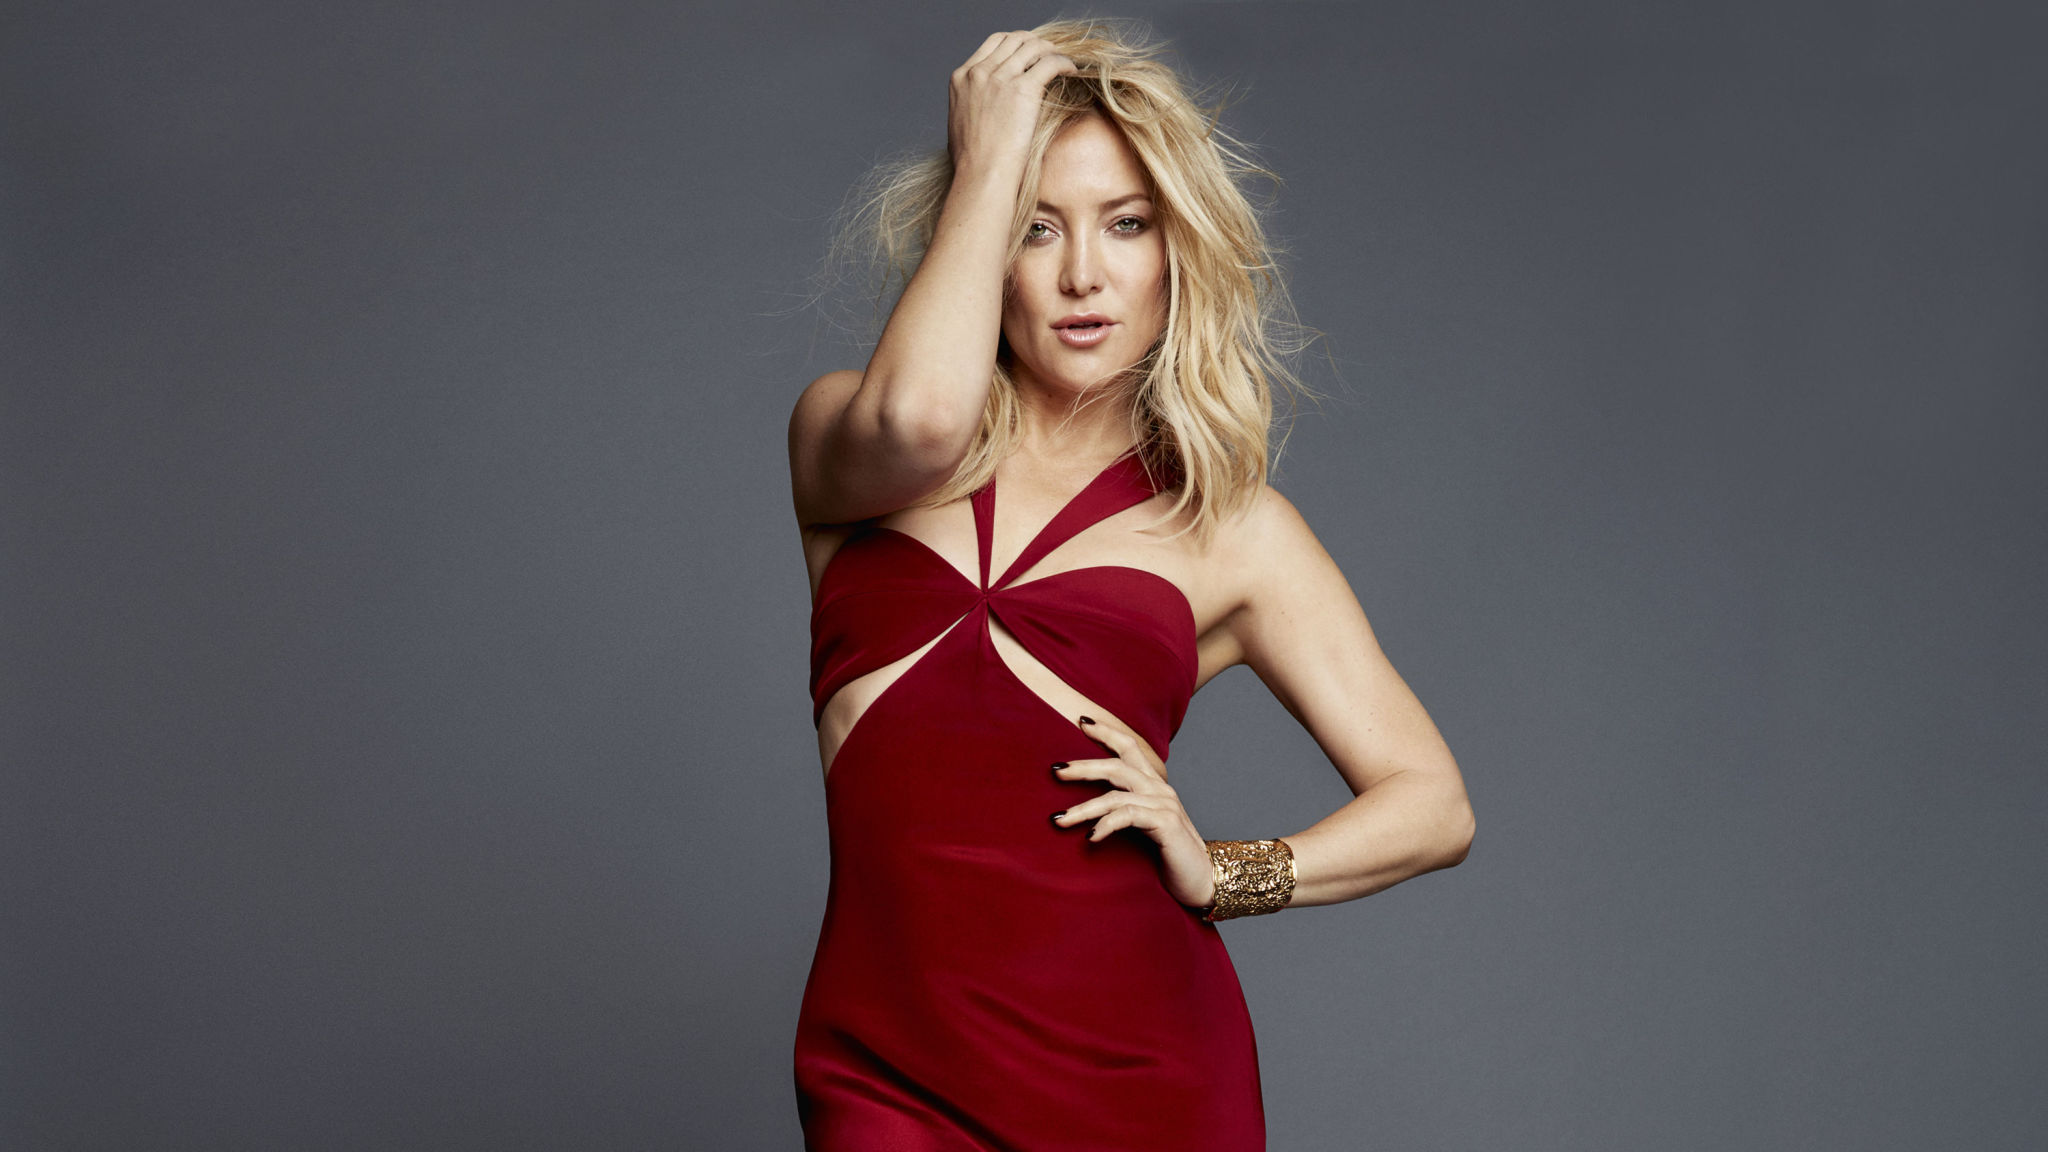 Kate Hudson: Lady in Red on Marie Claire Cover, Explains That Forgiveness Is Necessary @ the End of a Relationship